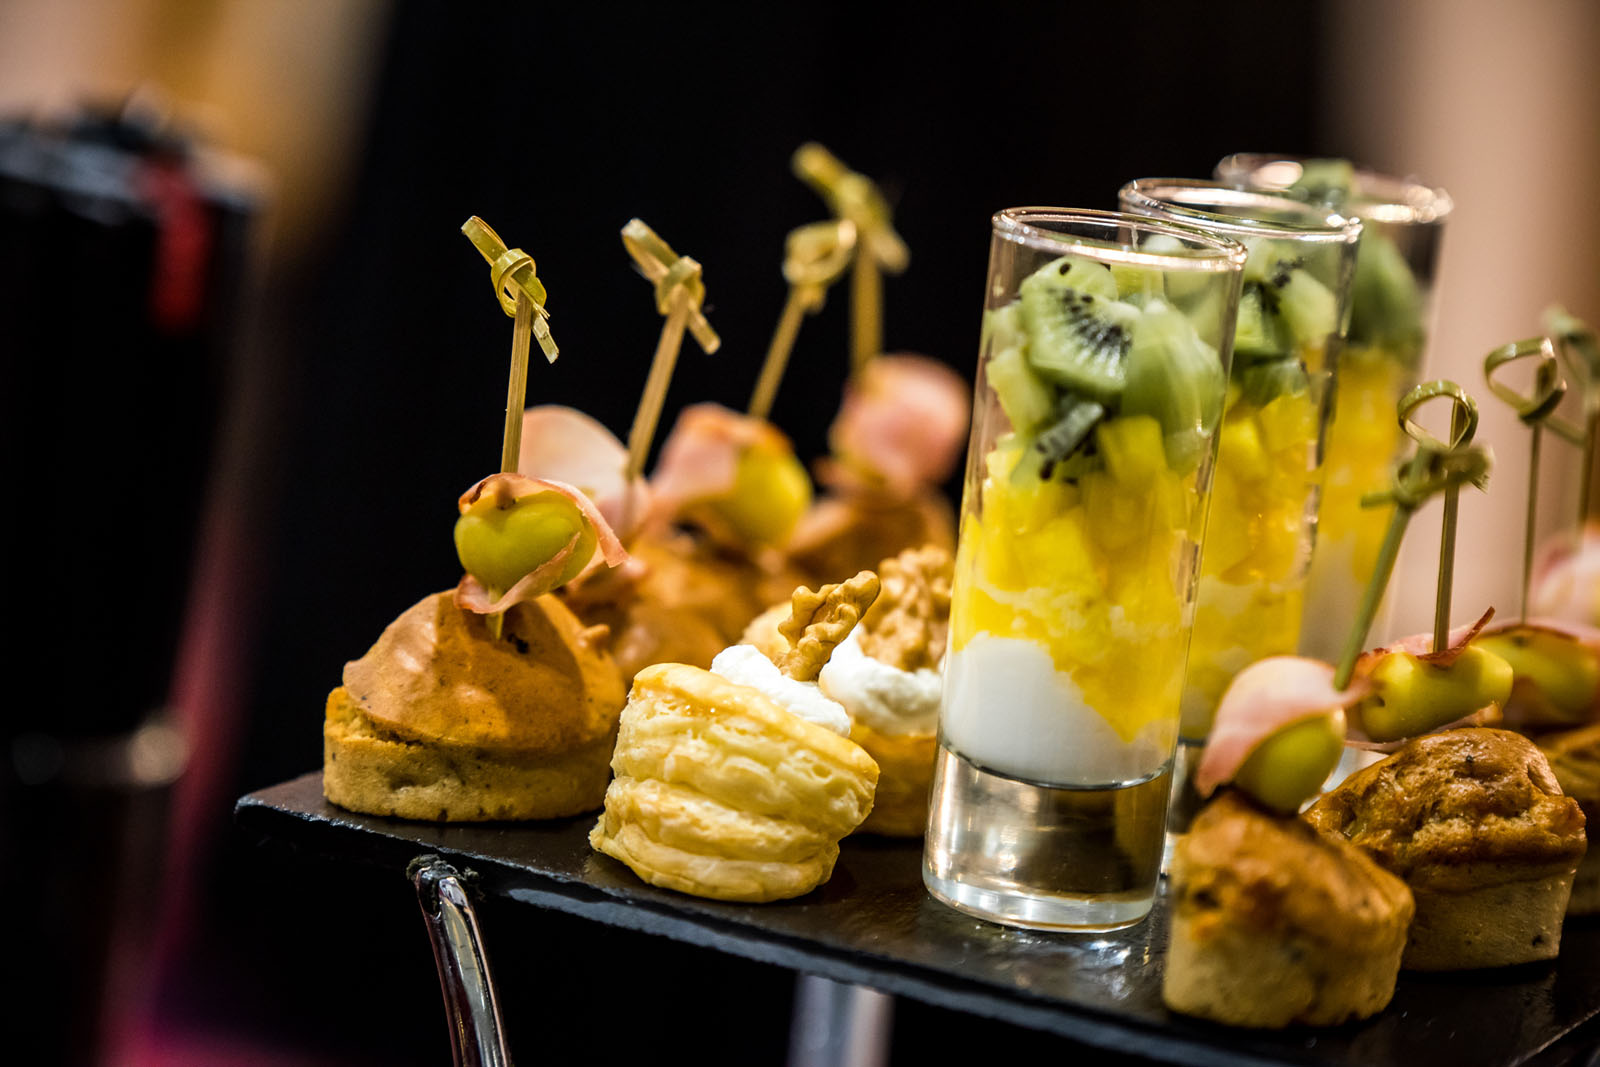 Catering at Kenzi Tower Hotel in central Casablanca, Morocco